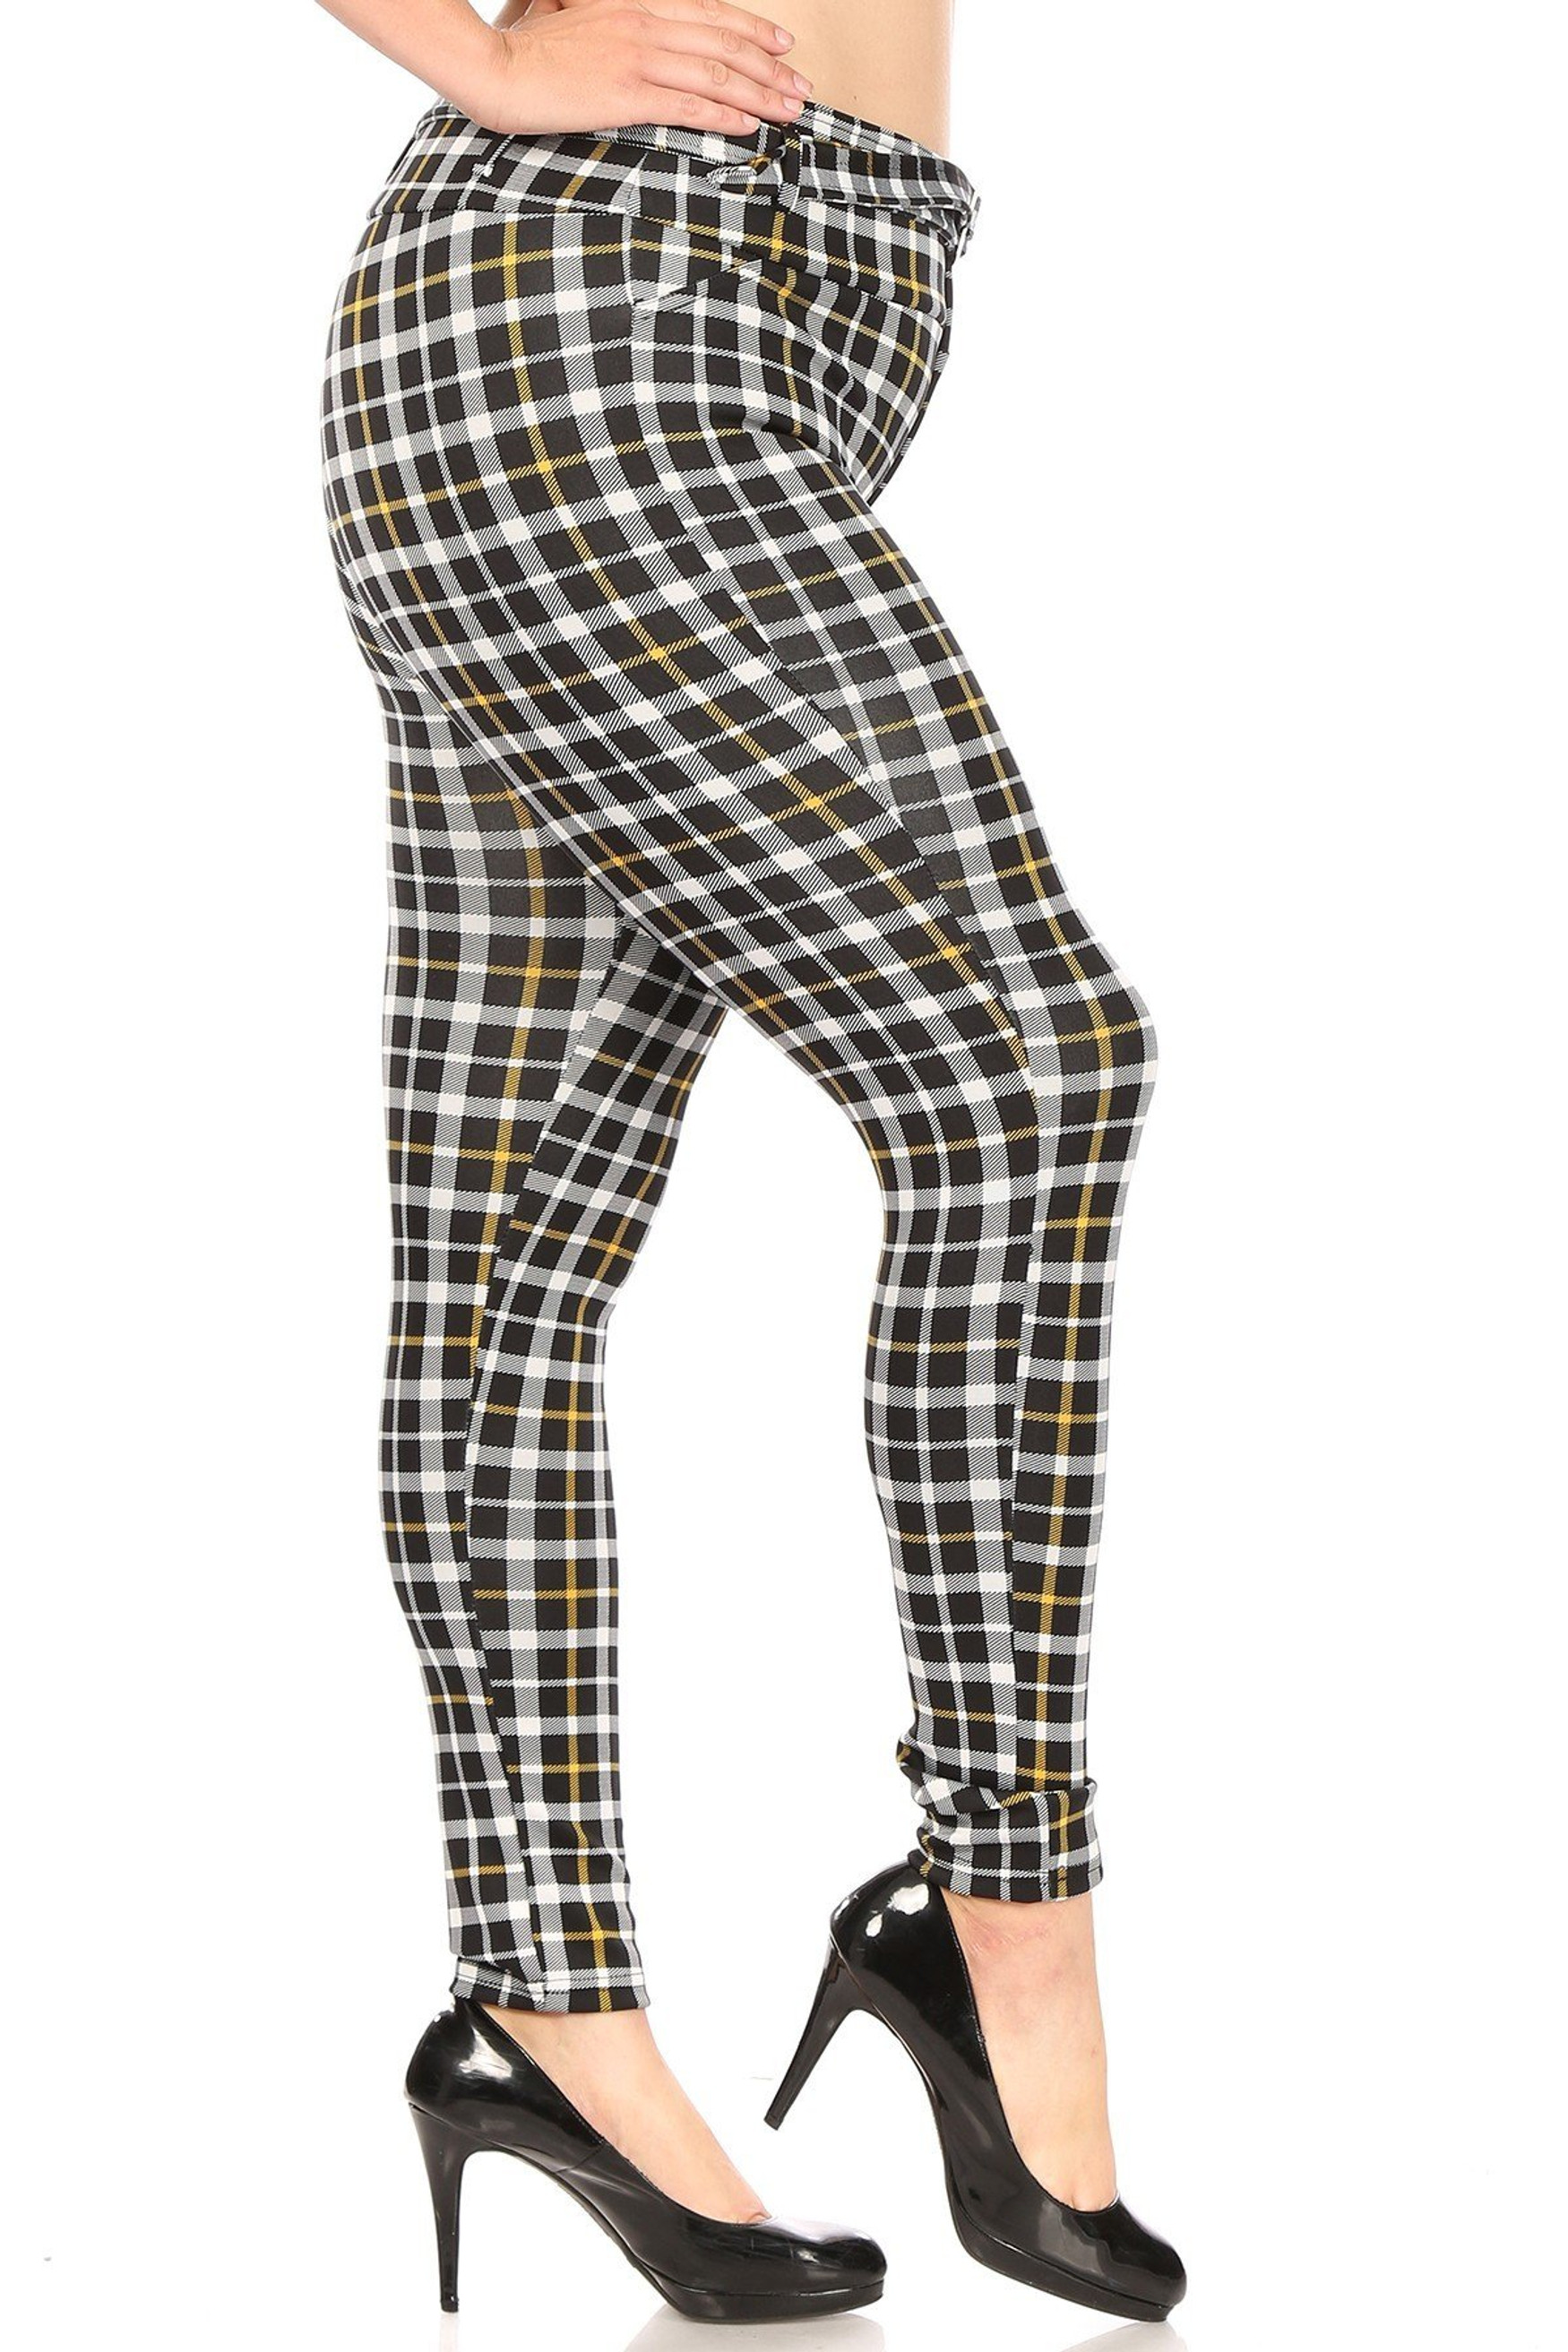 Belted Mustard Accent Plaid Plus Size Treggings with Pockets